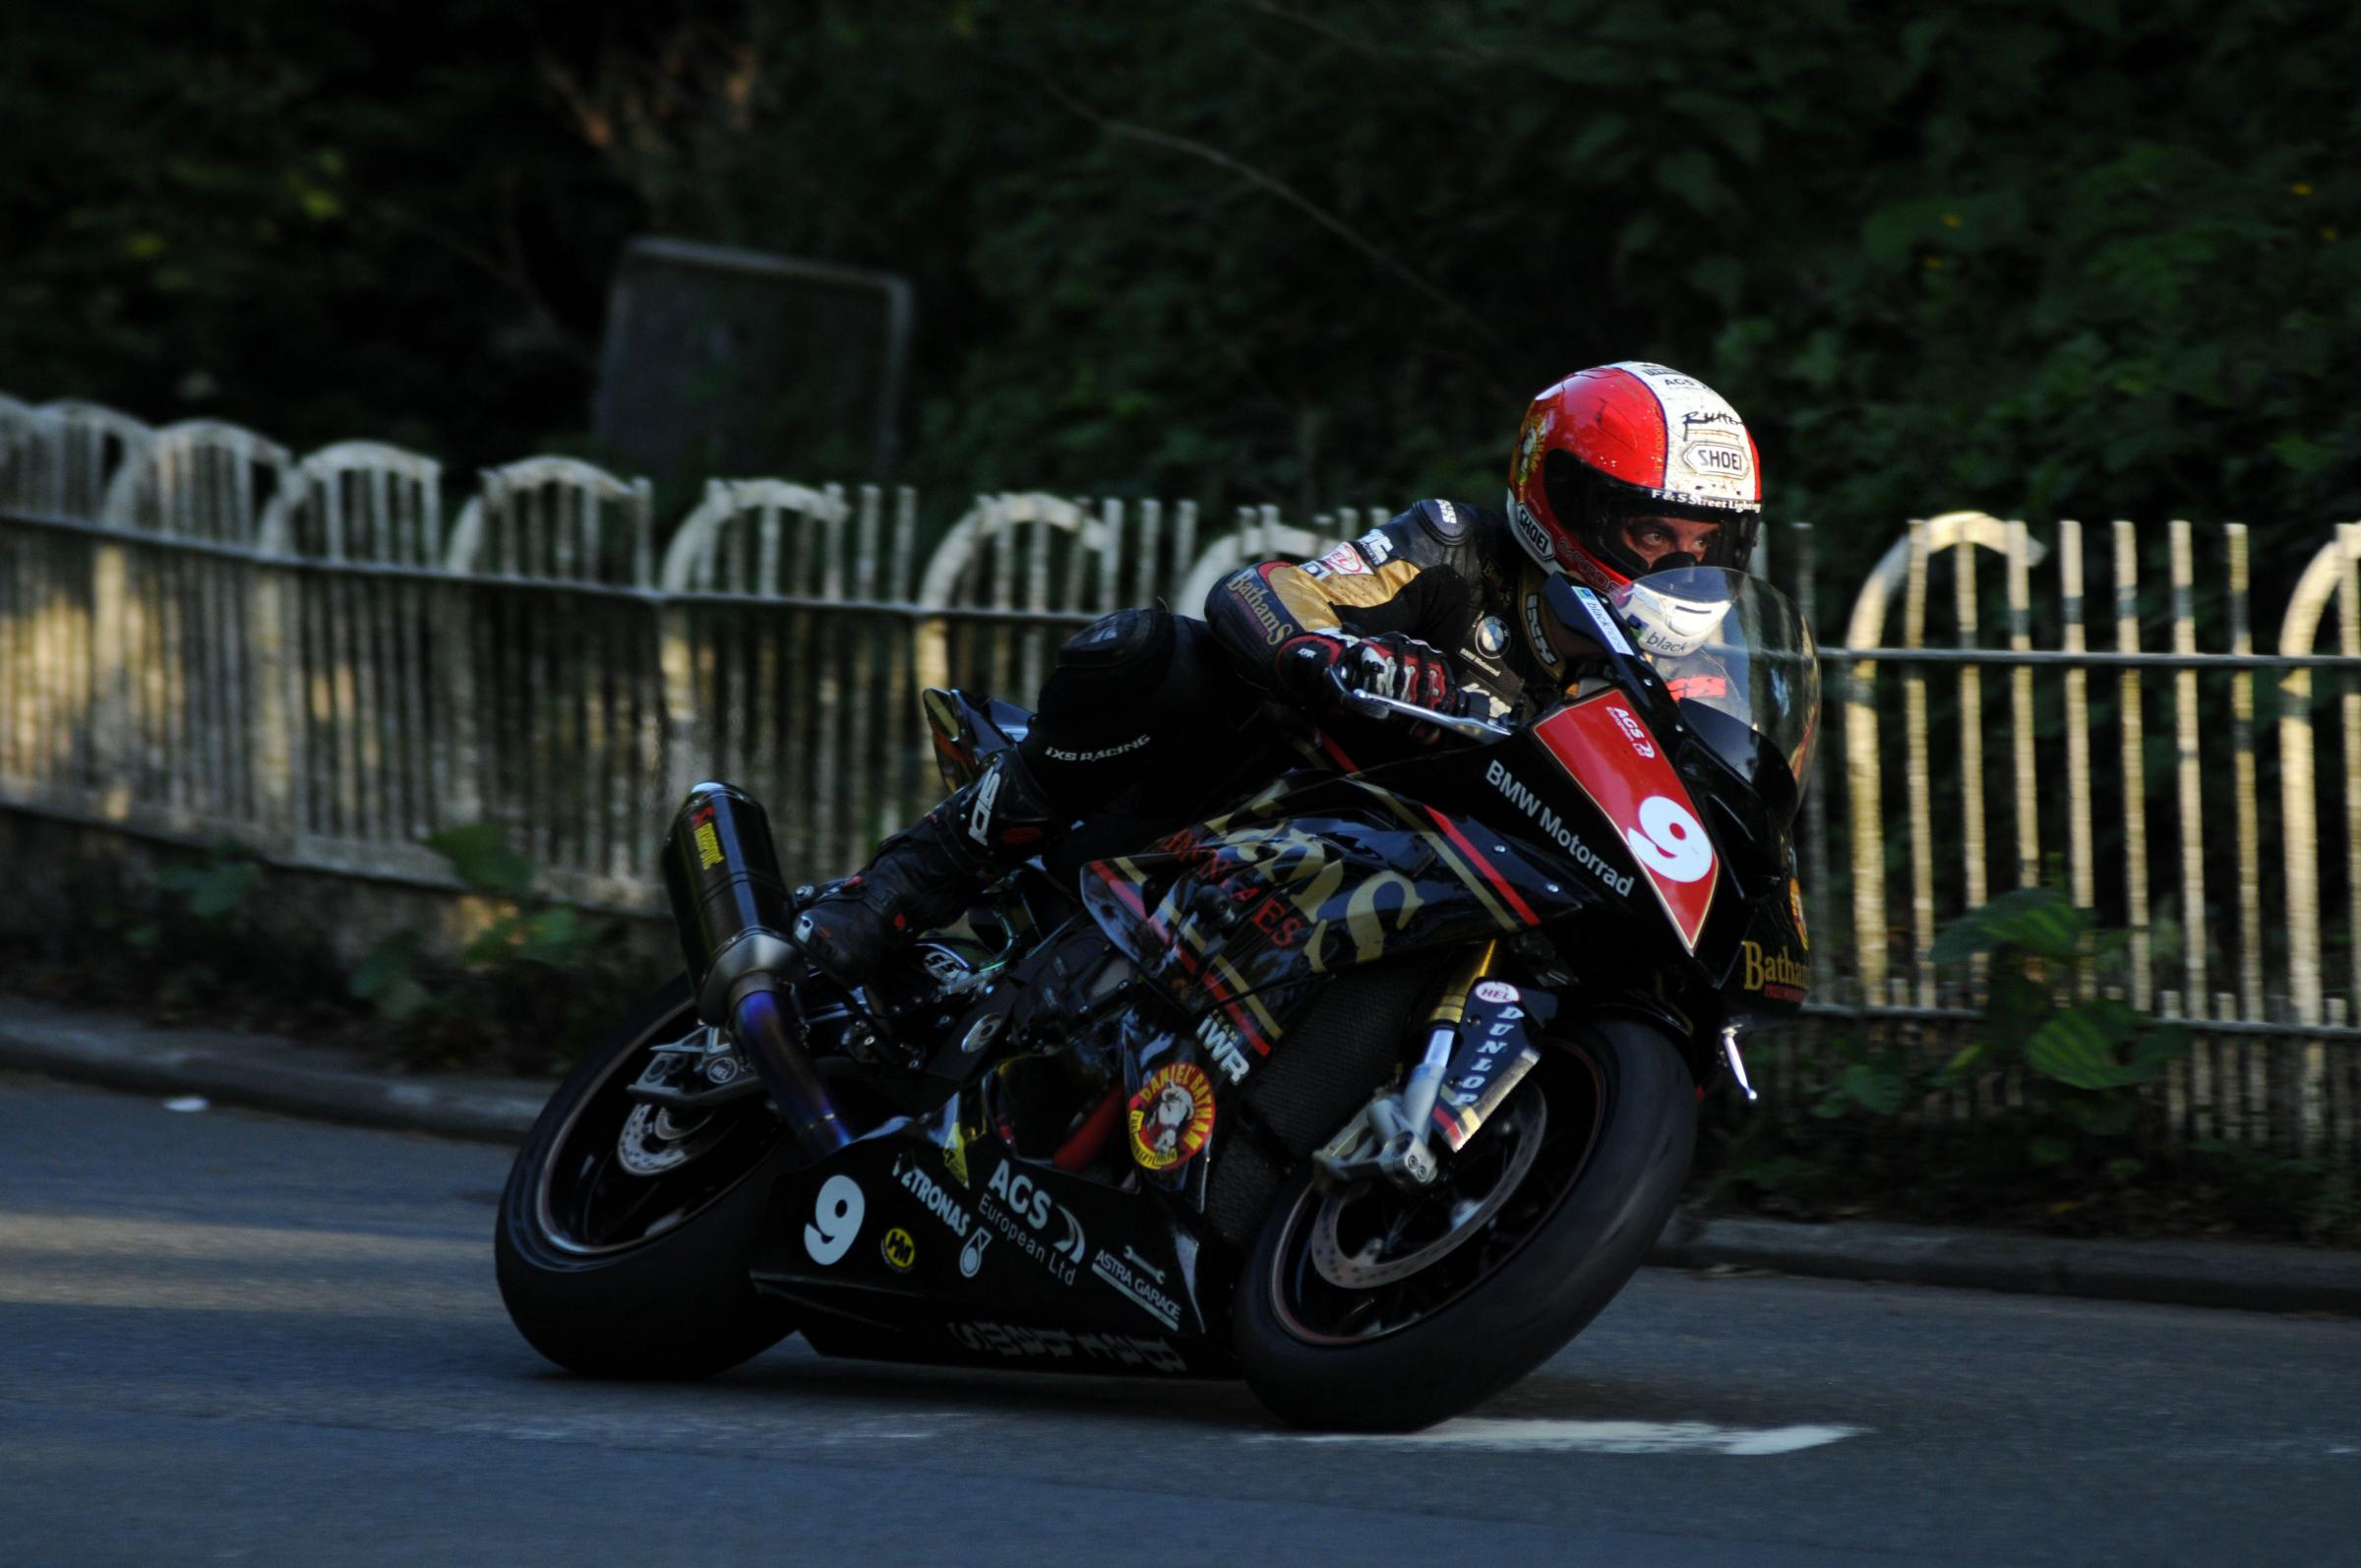 l Michael Rutter during qualifying for the 2014 Isle of Man TT. Photo: Stephen Davison.